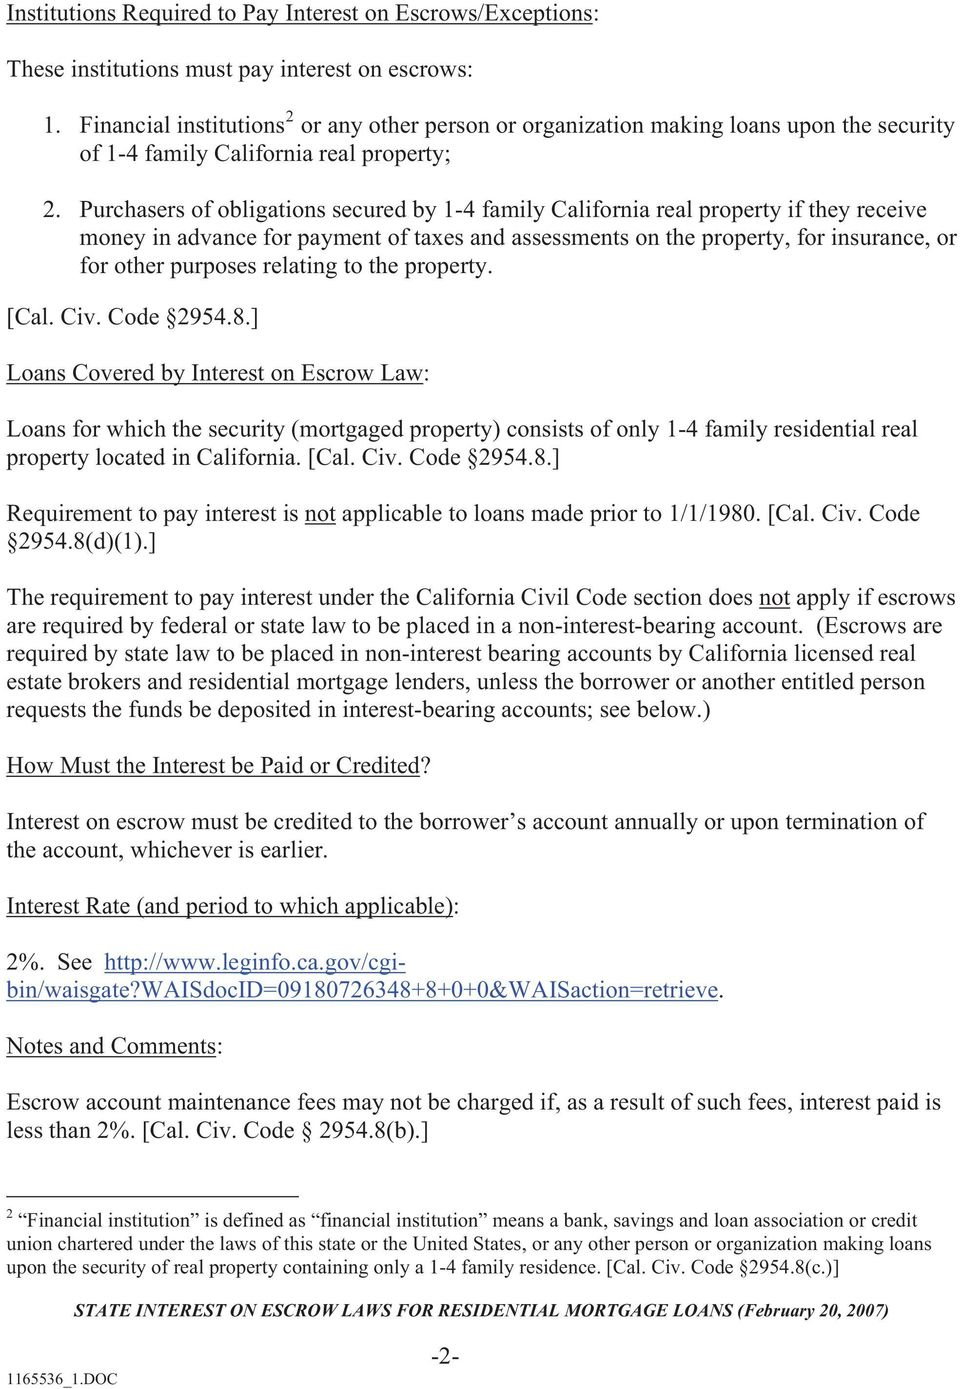 state interest on escrow laws for residential mortgage loans 1